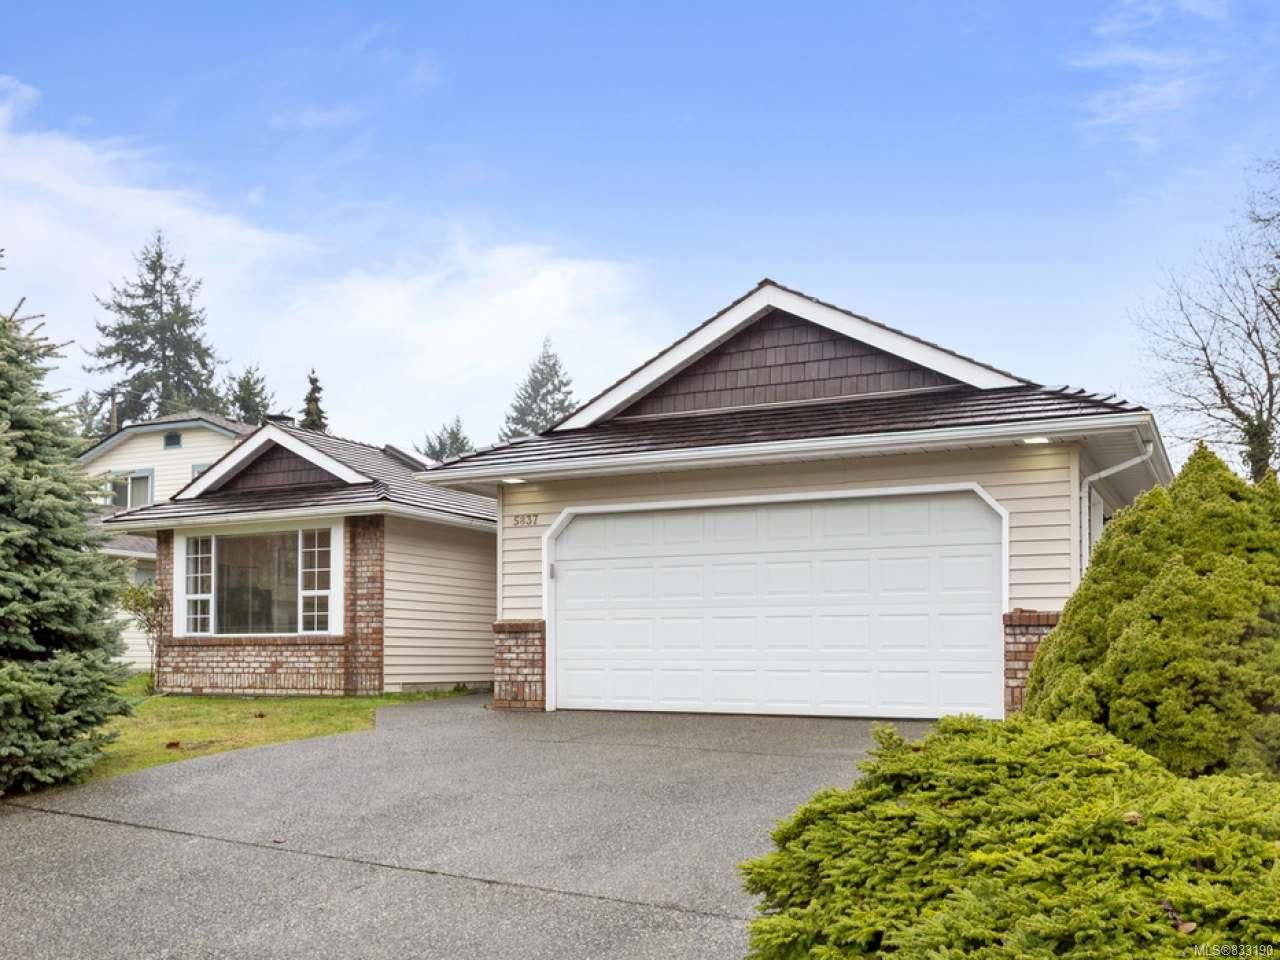 Main Photo: 5837 Brigantine Dr in NANAIMO: Na North Nanaimo House for sale (Nanaimo)  : MLS®# 833190